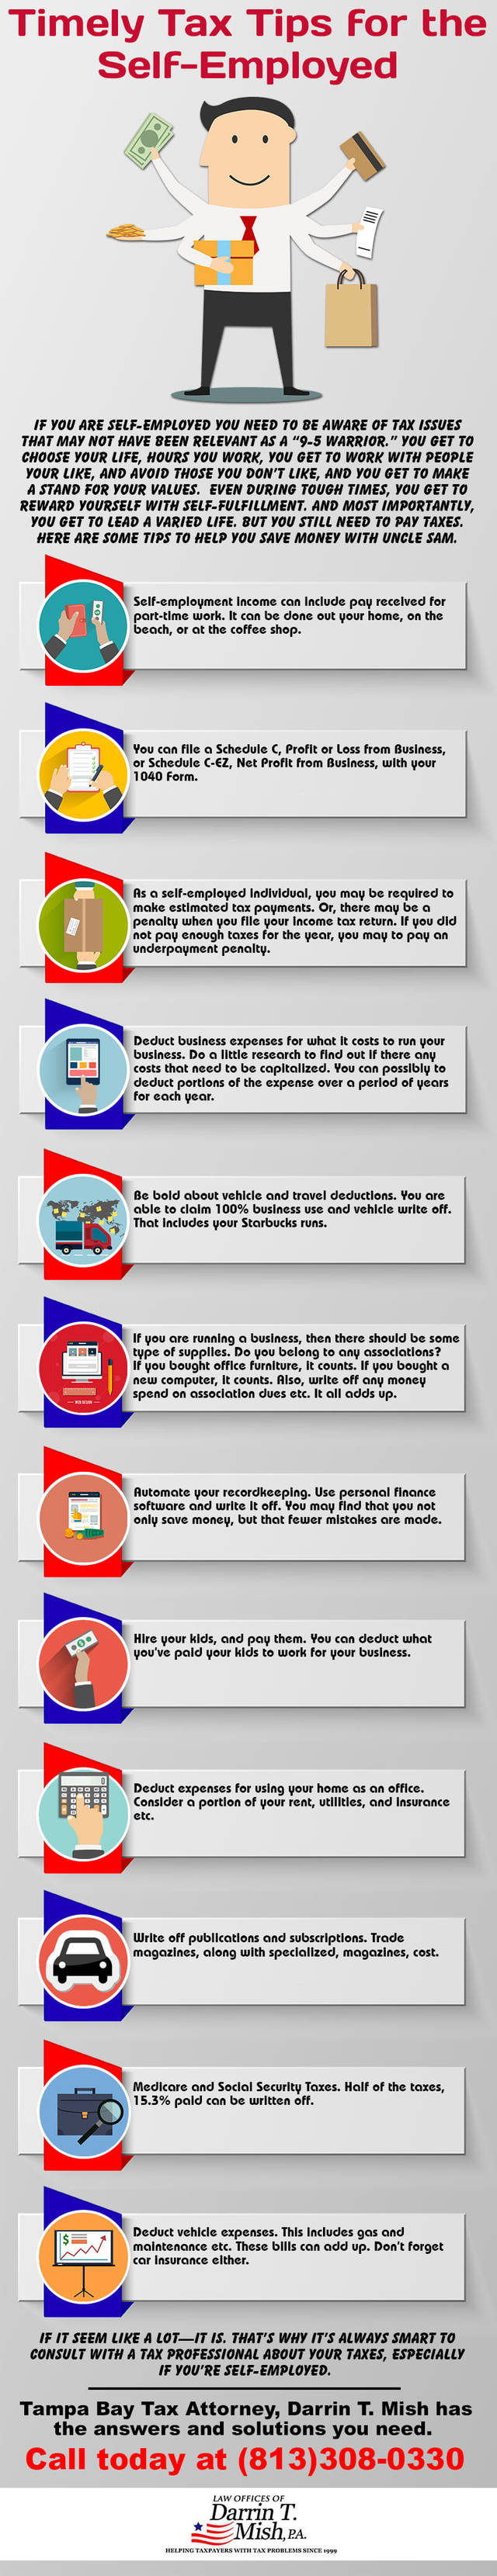 Infographic 123 timely tax tips for the self employed